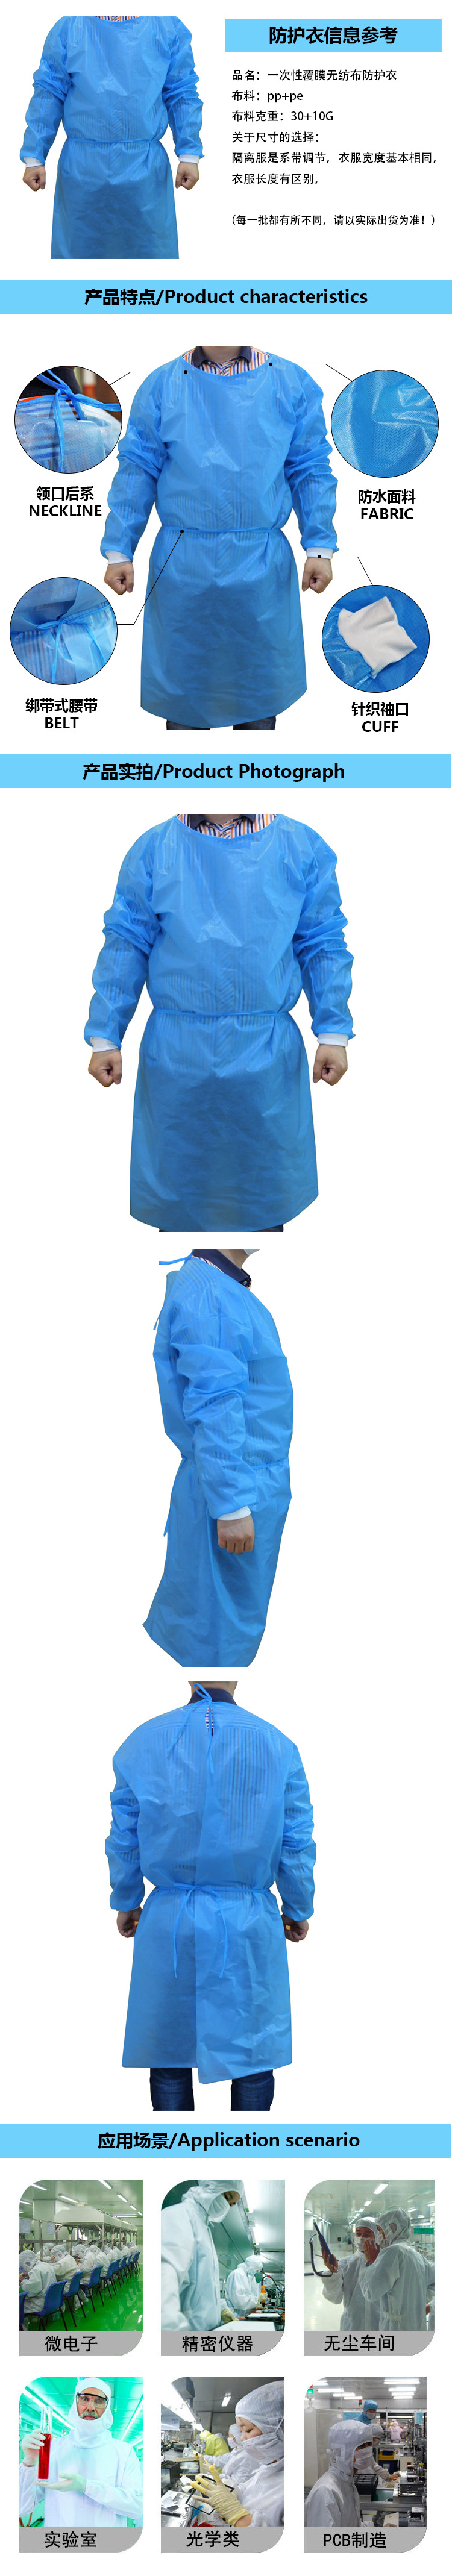 Isolation Disposable Protective PP+PE Surgical Gown